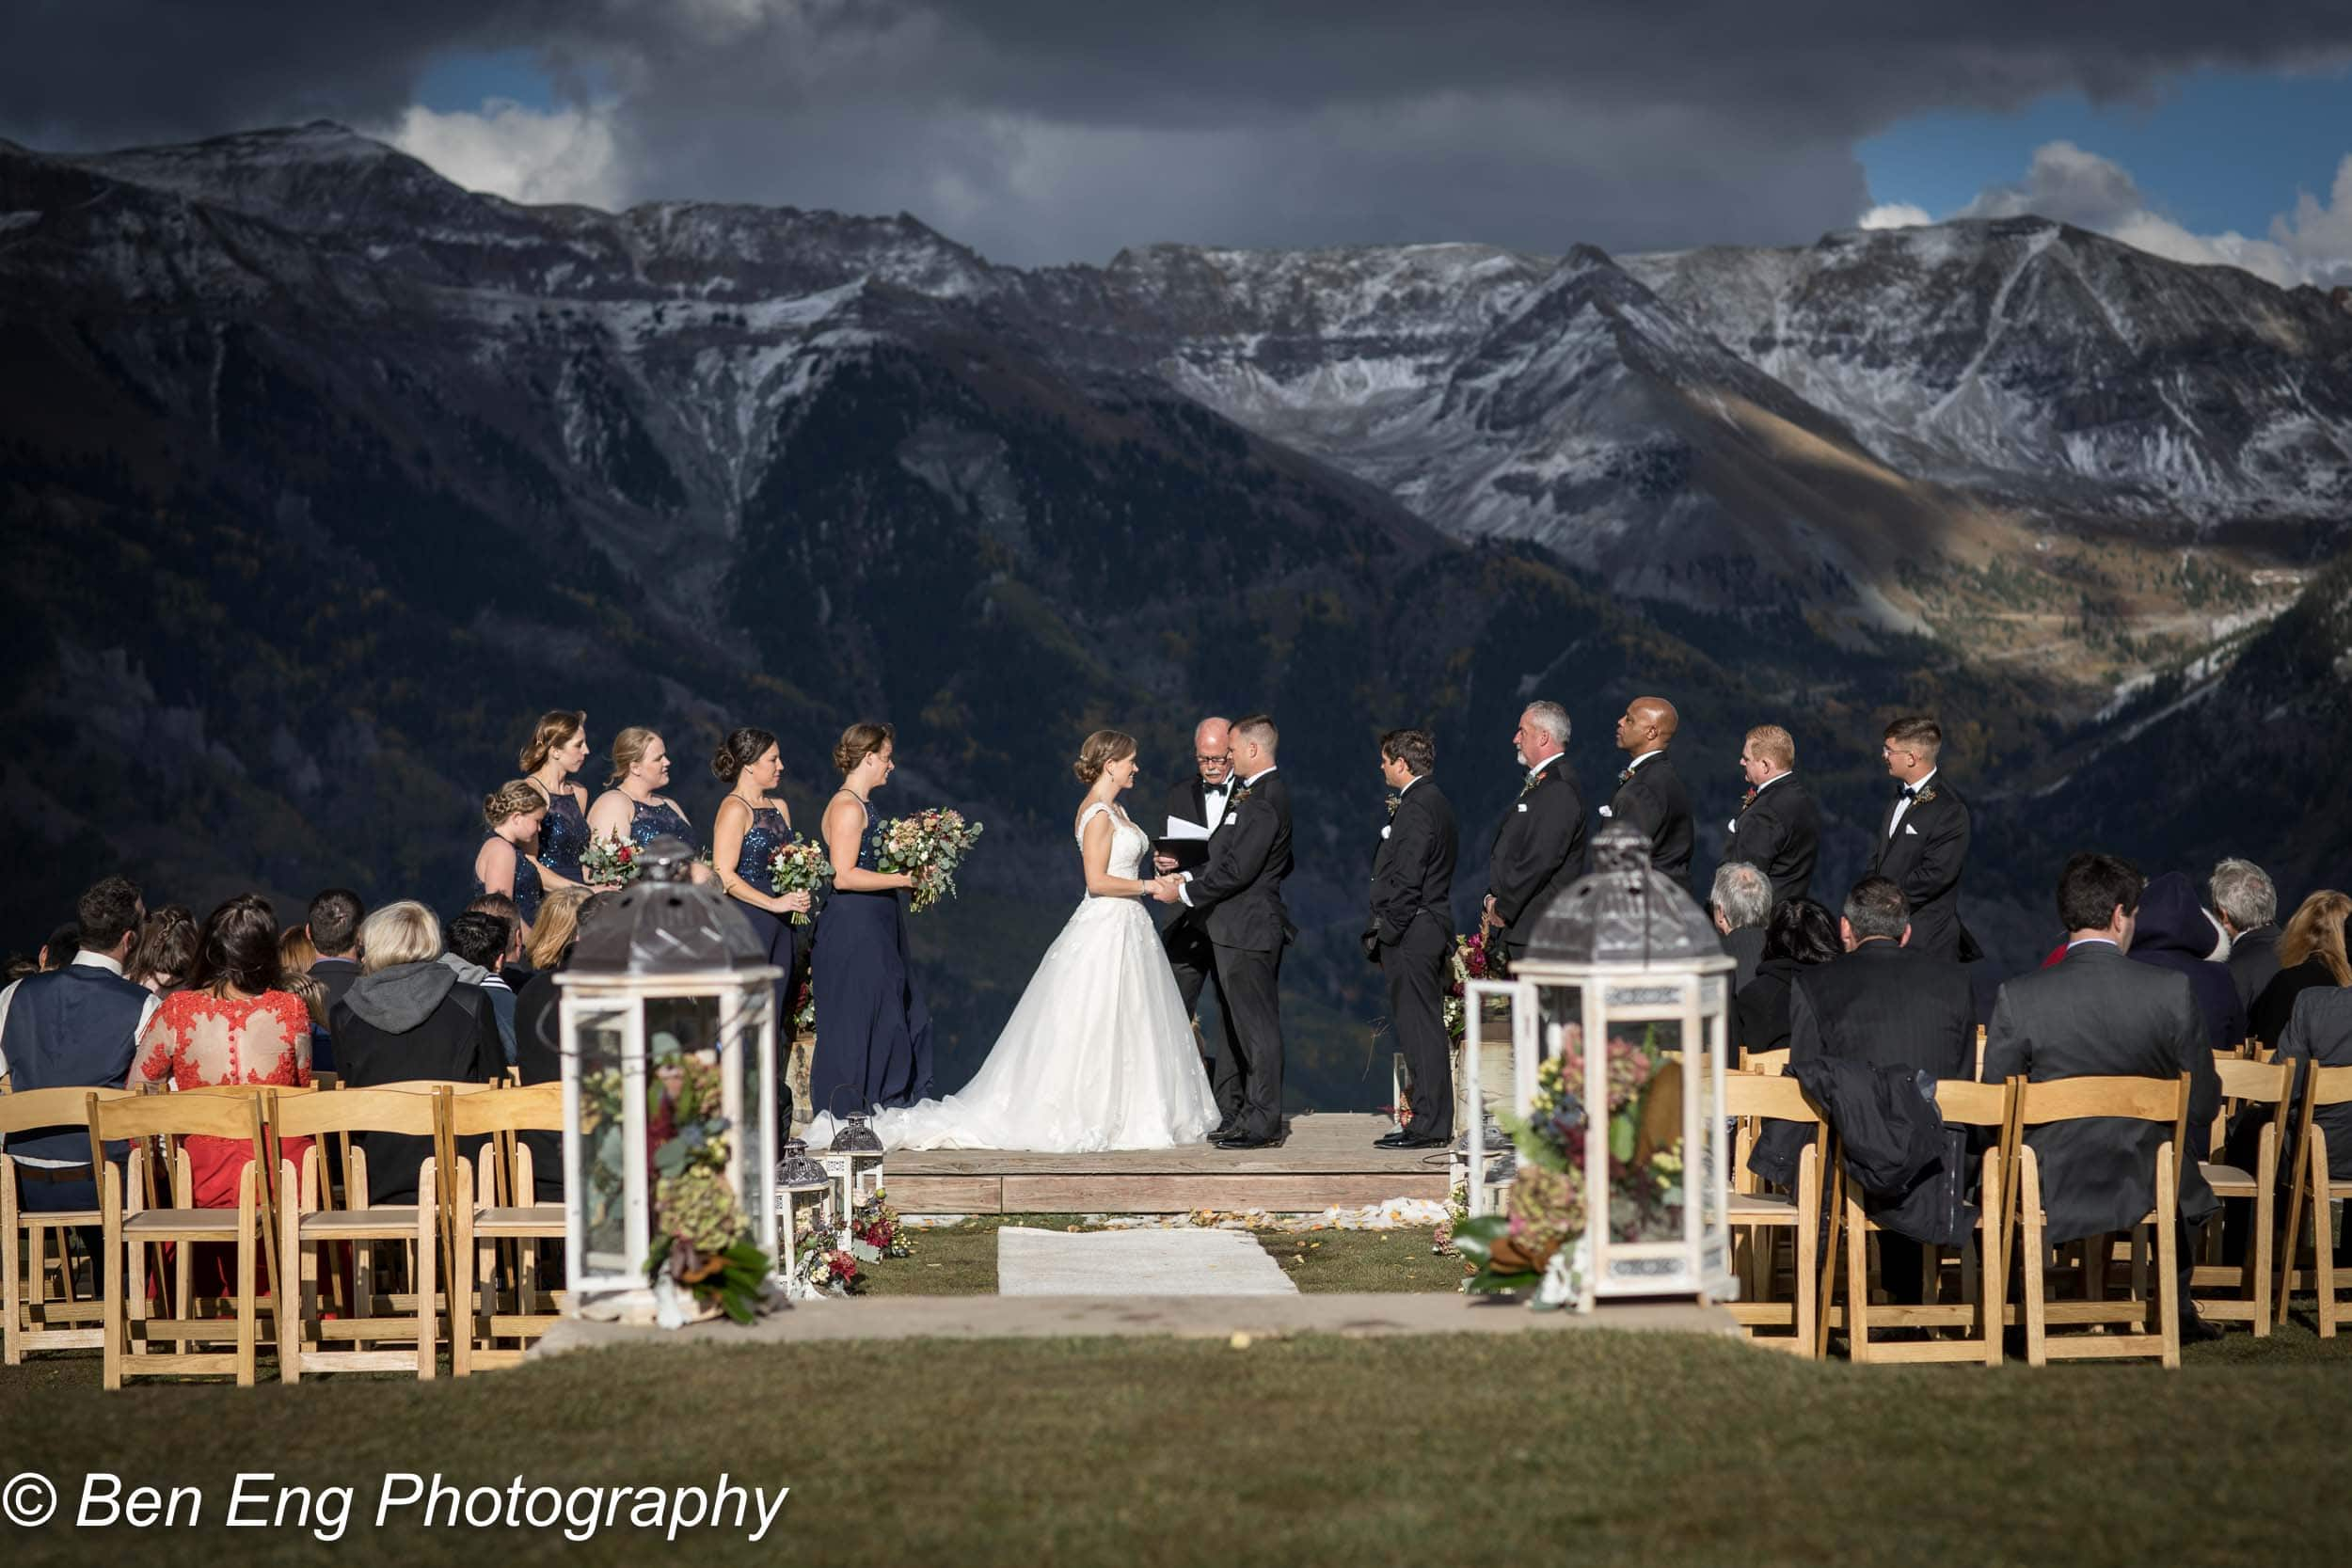 Chris and Lauren wedding at The San Sophia Overlook and Gorrono Ranch in Telluride, CO. Image by Ben Eng. Event design and planning by Telluride Unveiled. Hair by Megan Keever.